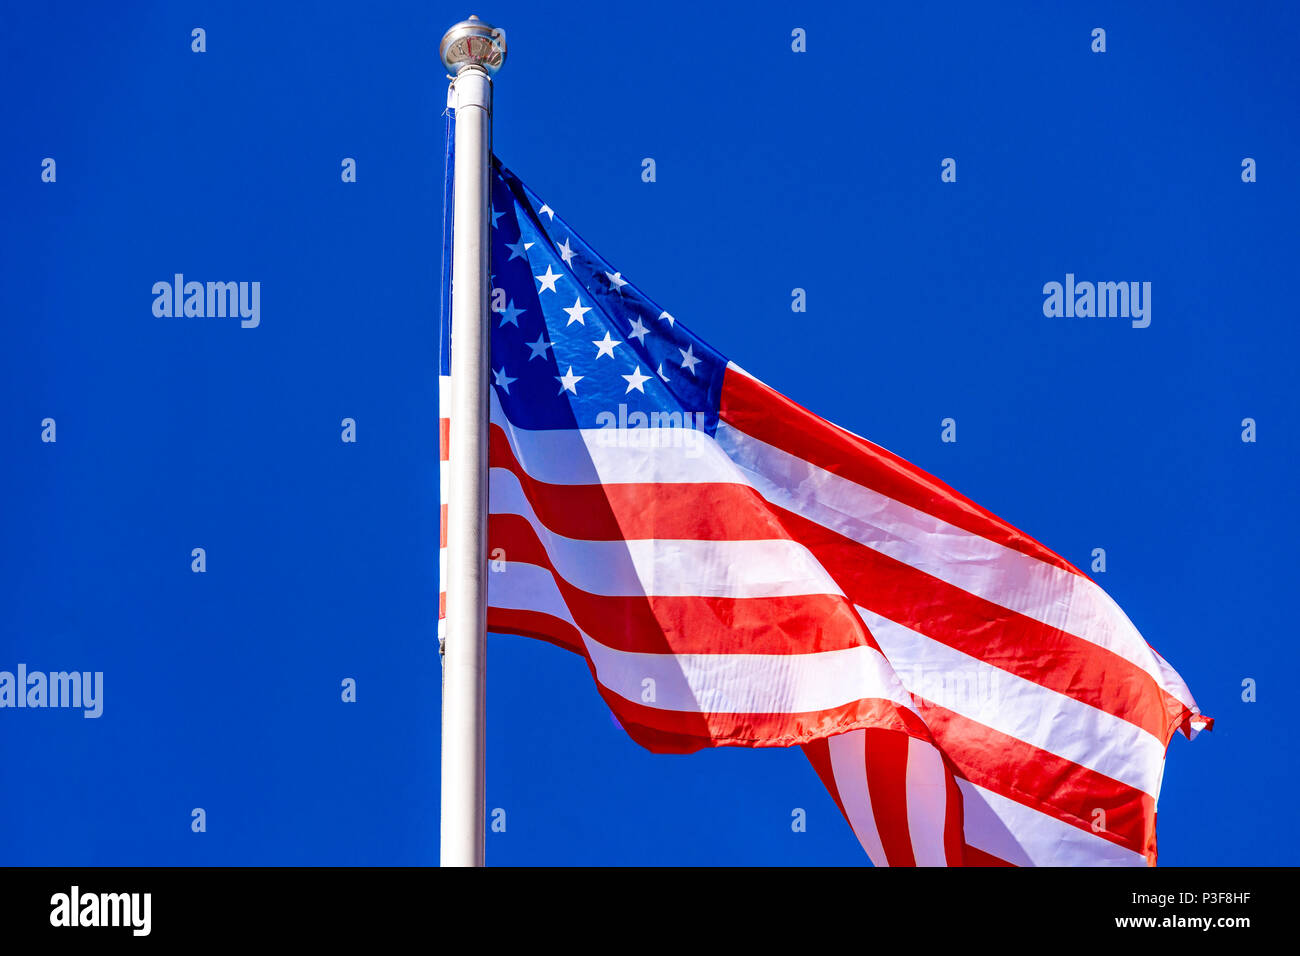 American Flag against blue sky. Stock Photo